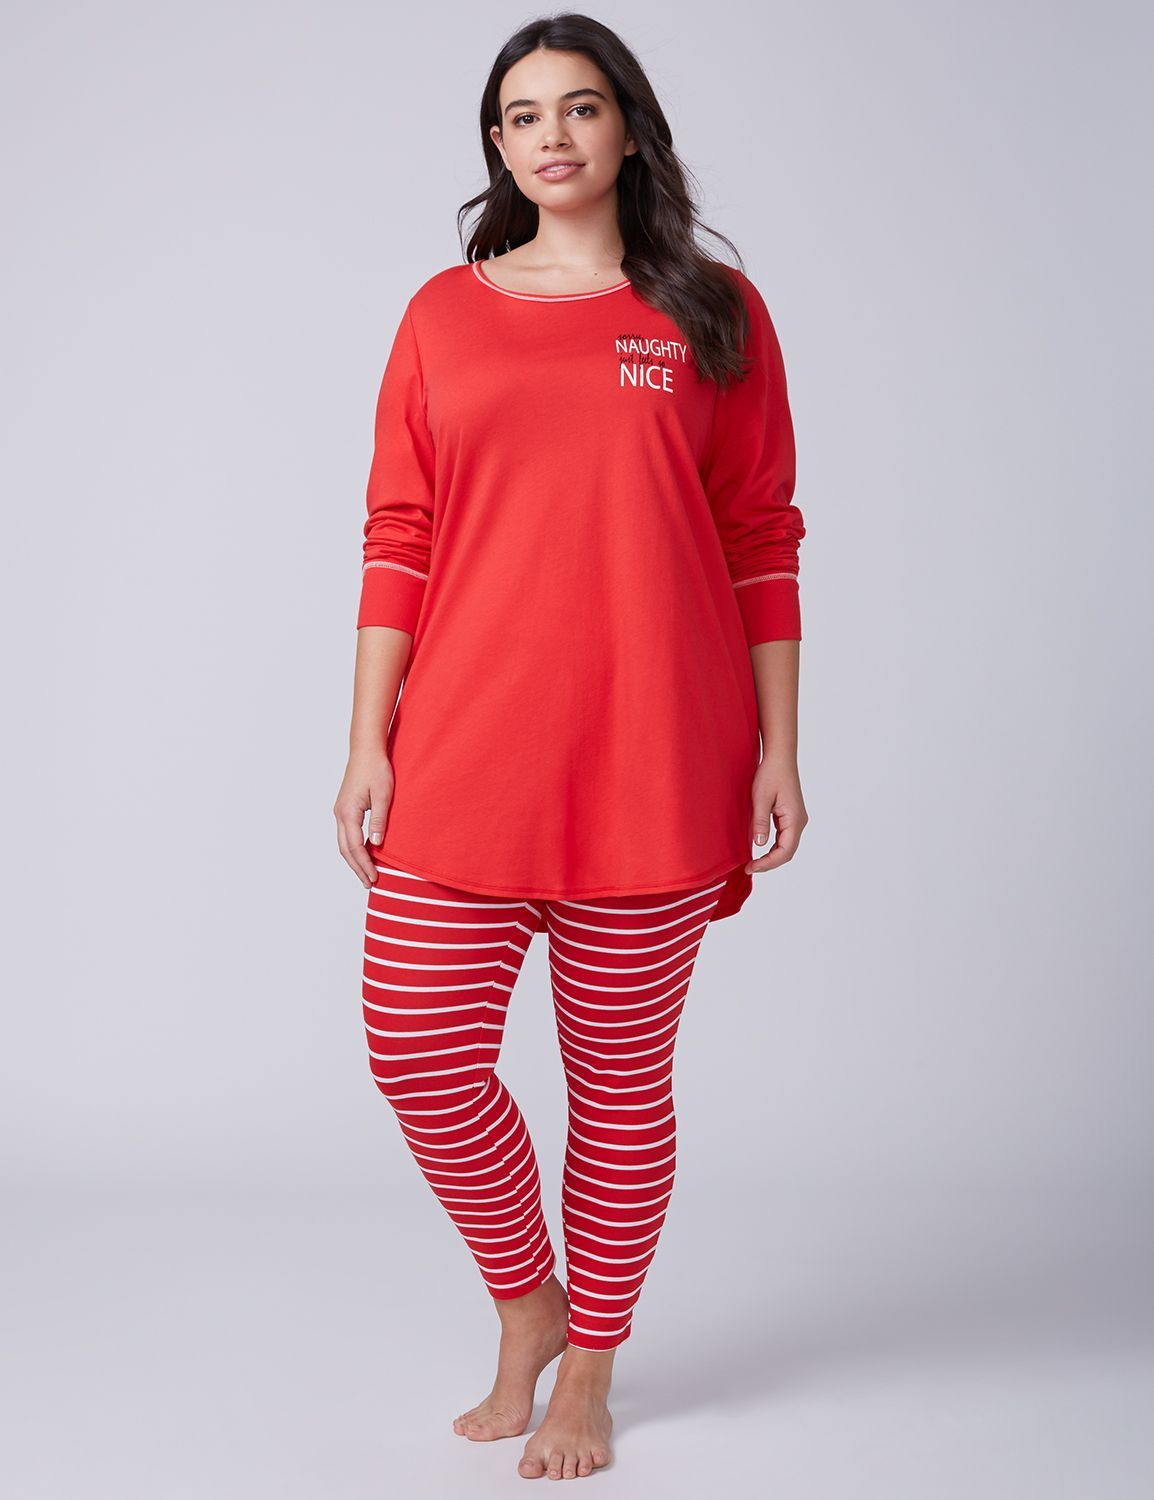 Plus Size Christmas Pajamas.Naughty Nice Tee Legging Pj Set Lane Bryant My Style